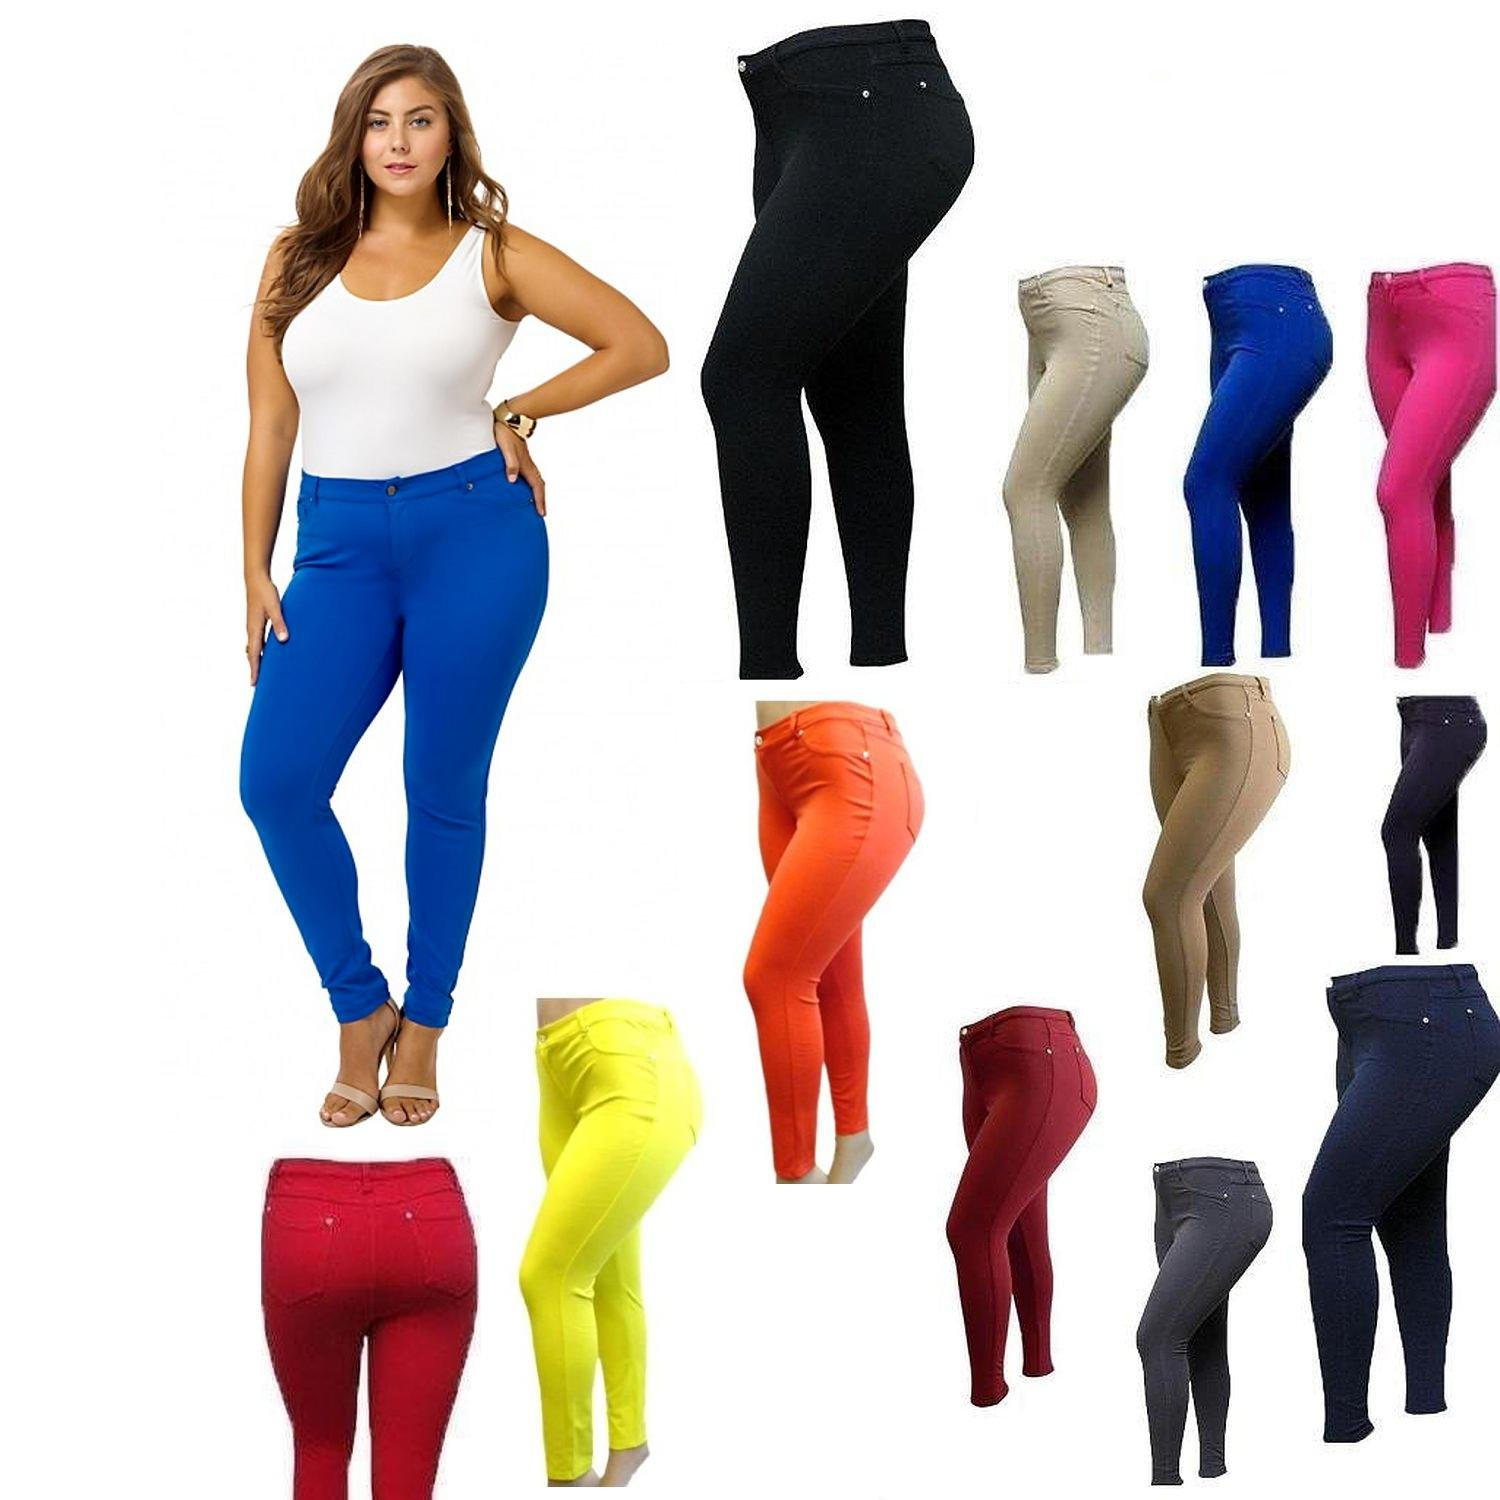 9f8bd86d53e 1826 NEW Stretchy PONTE HIGH WAIST WOMENS PLUS SIZE pants SKINNY LEG size  PL2676 at Amazon Women s Clothing store